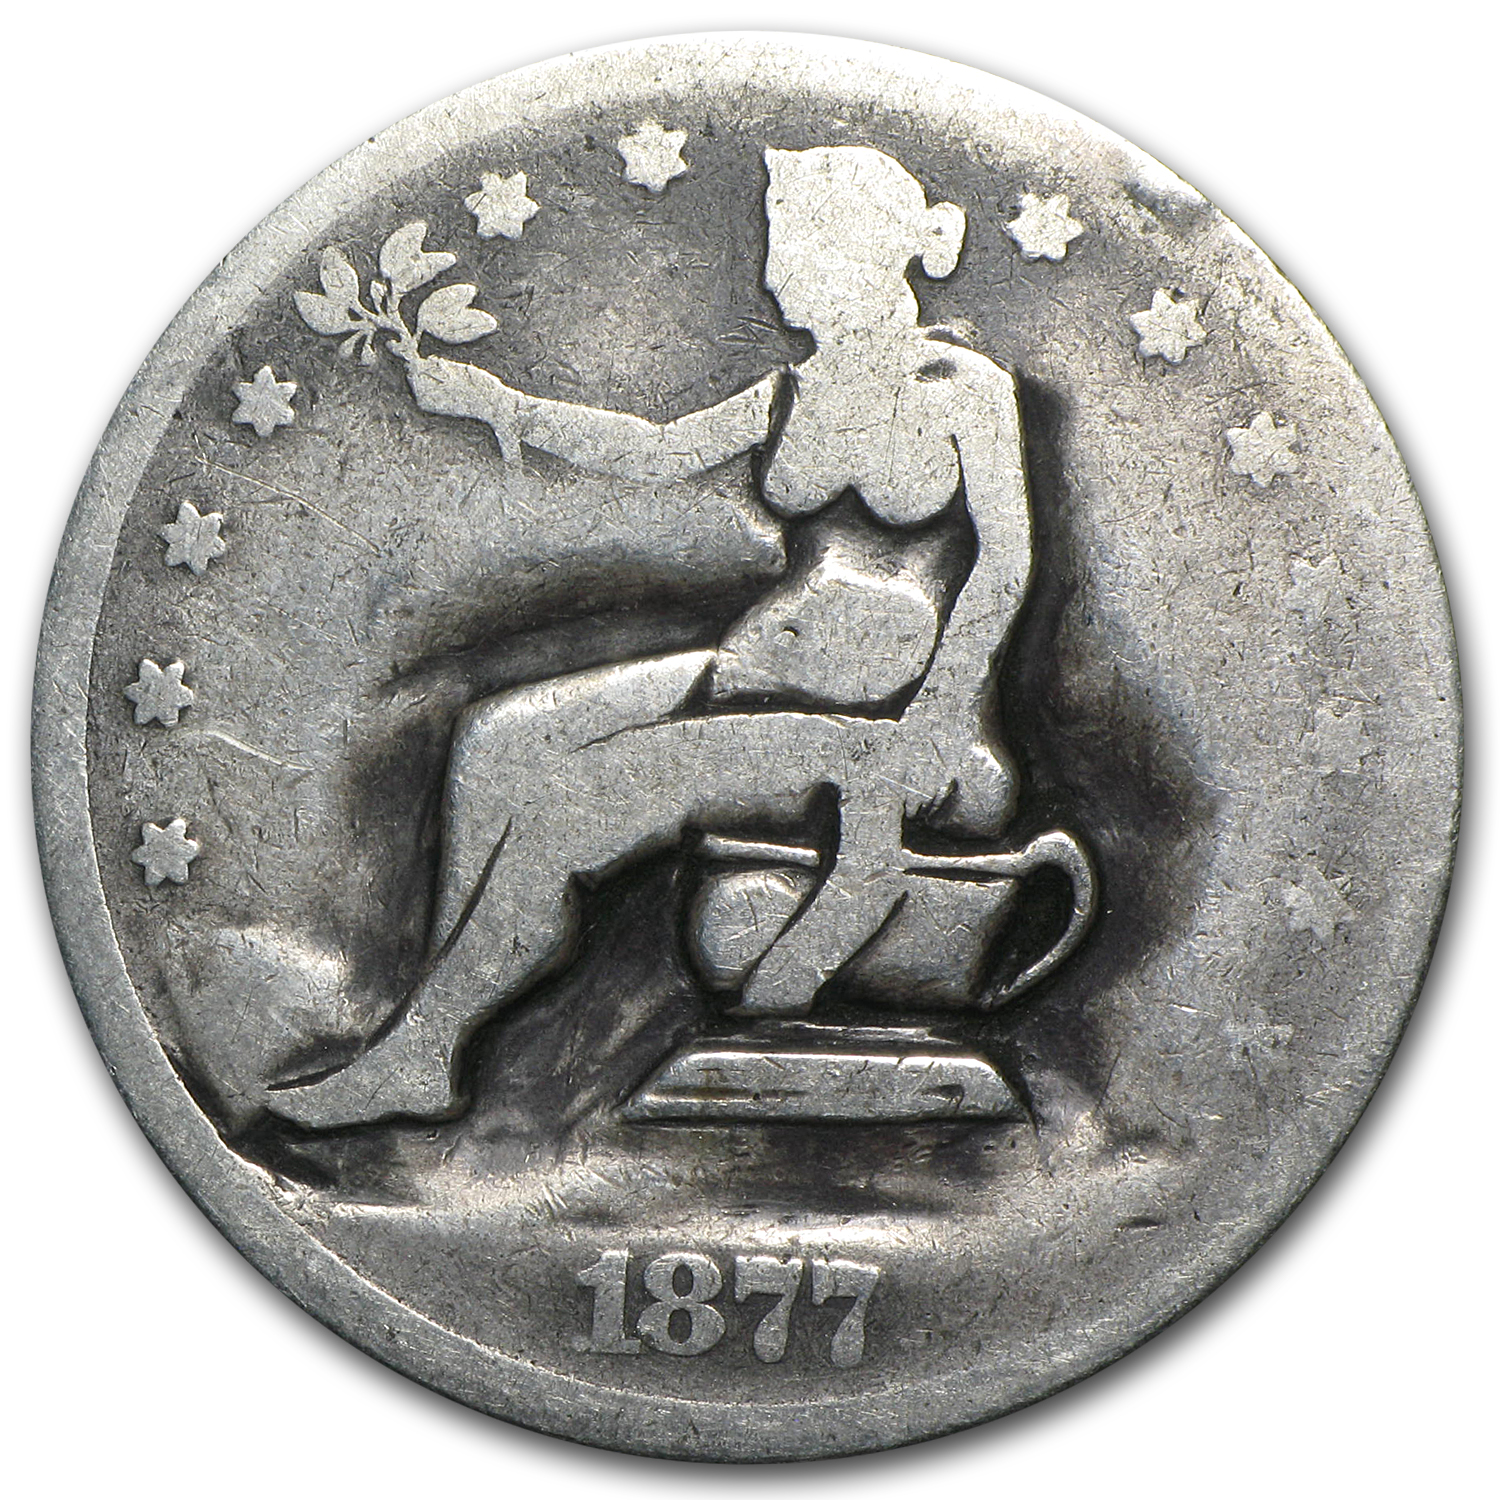 1877 Trade Dollar - Potty Dollar